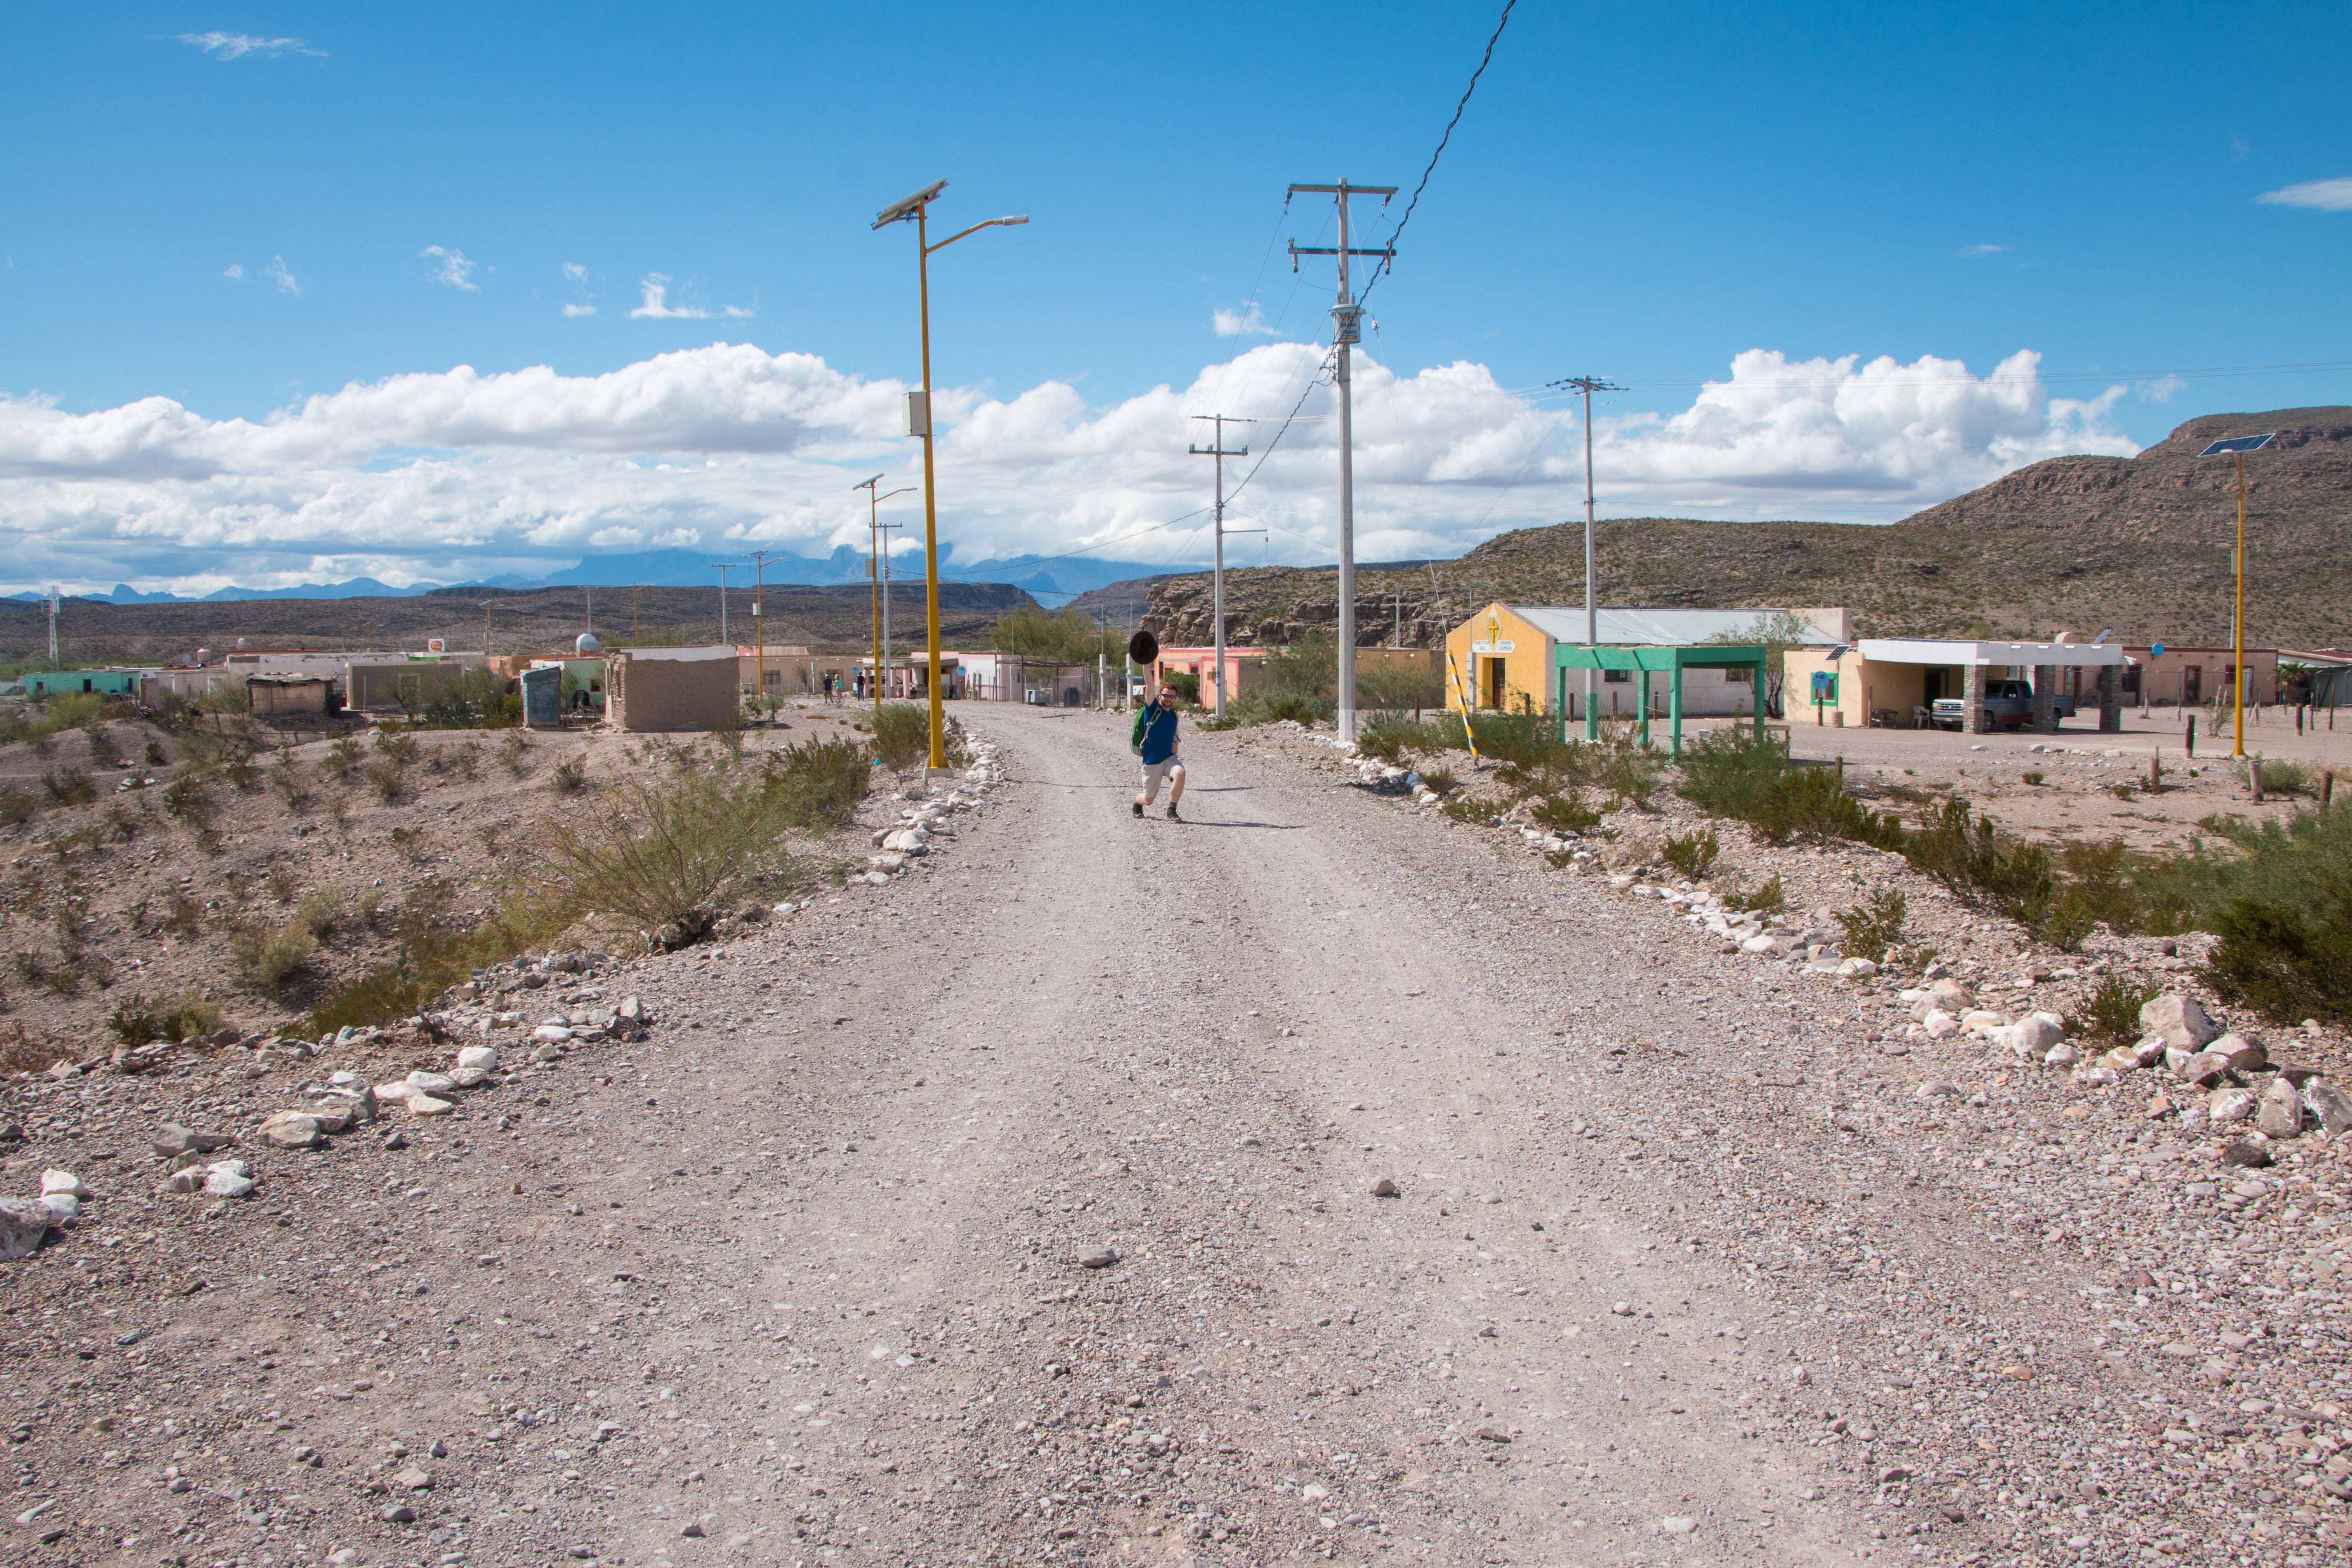 Kevin in boquillas del carmen, Mexico. Seen in the photo is one of the solar panels placed by the government in recent years.